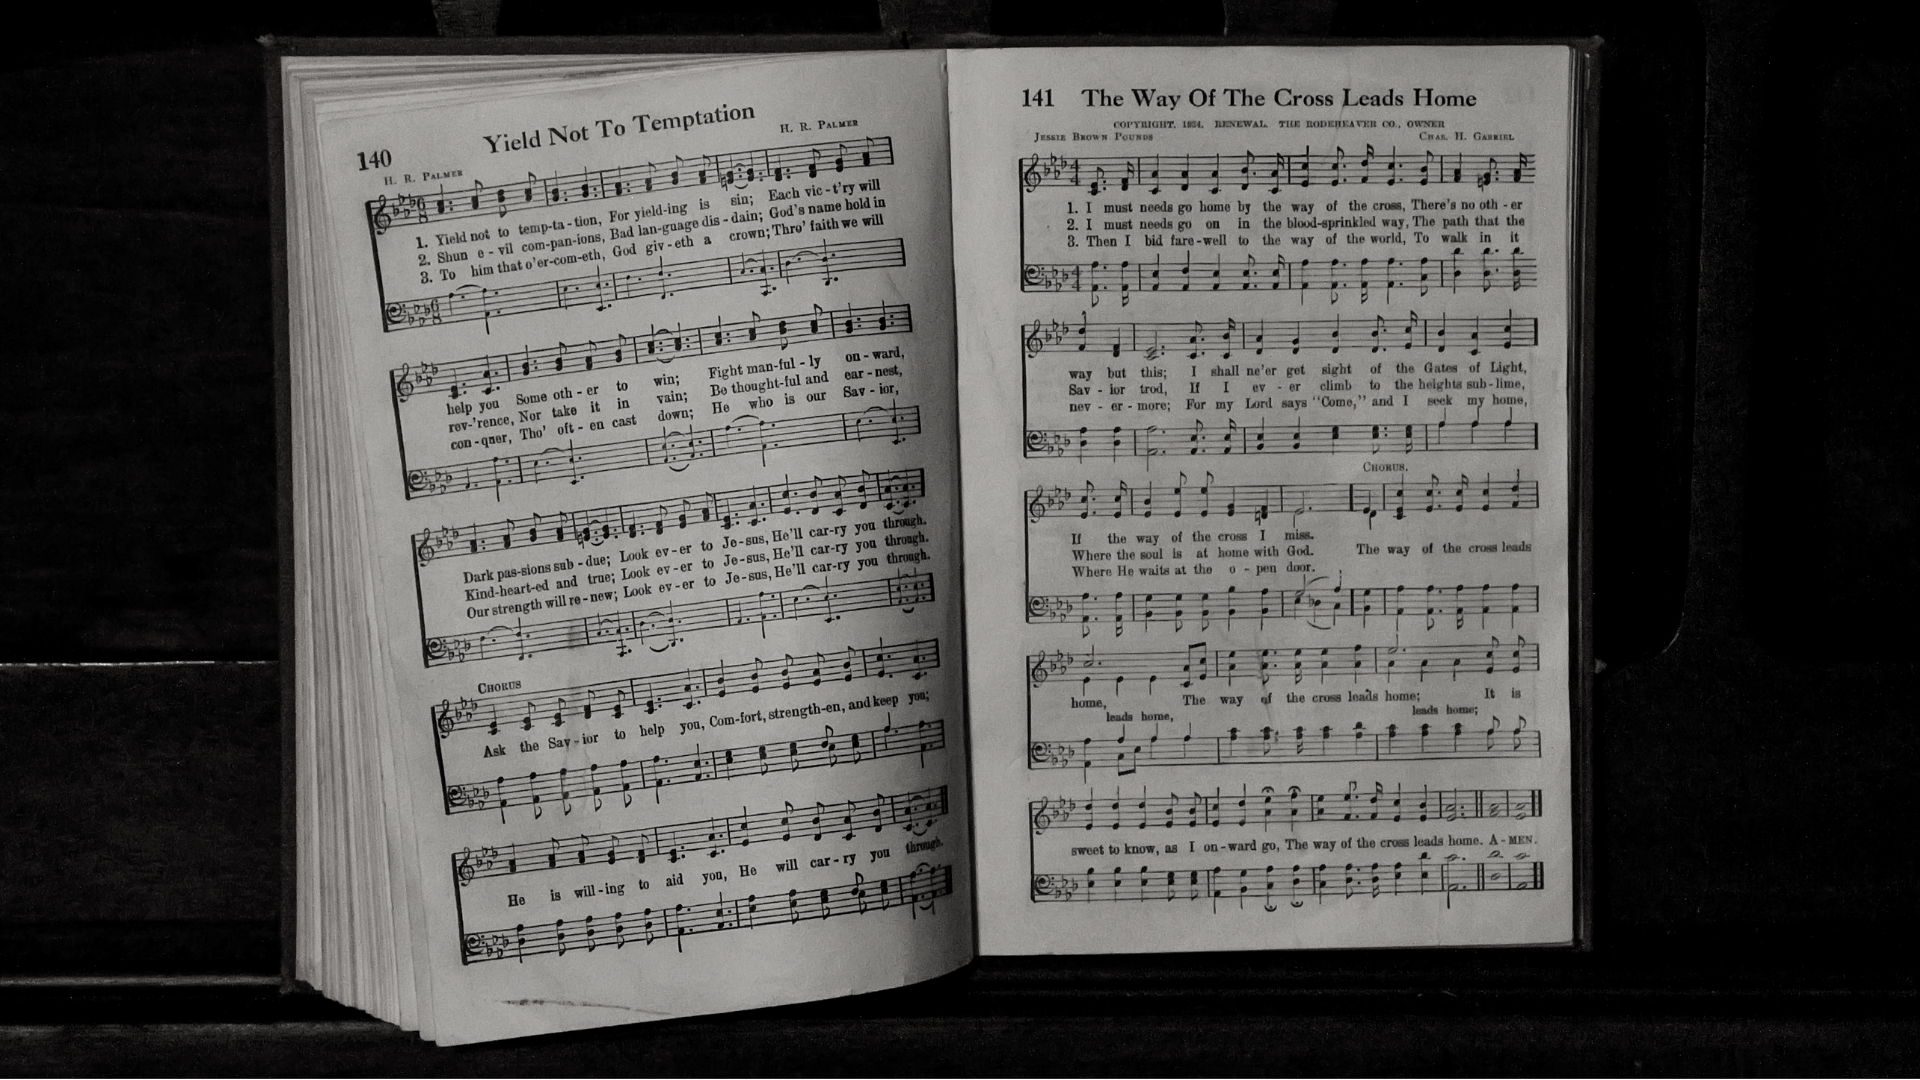 SDA HYMNAL (1985) | Hymns for Worship